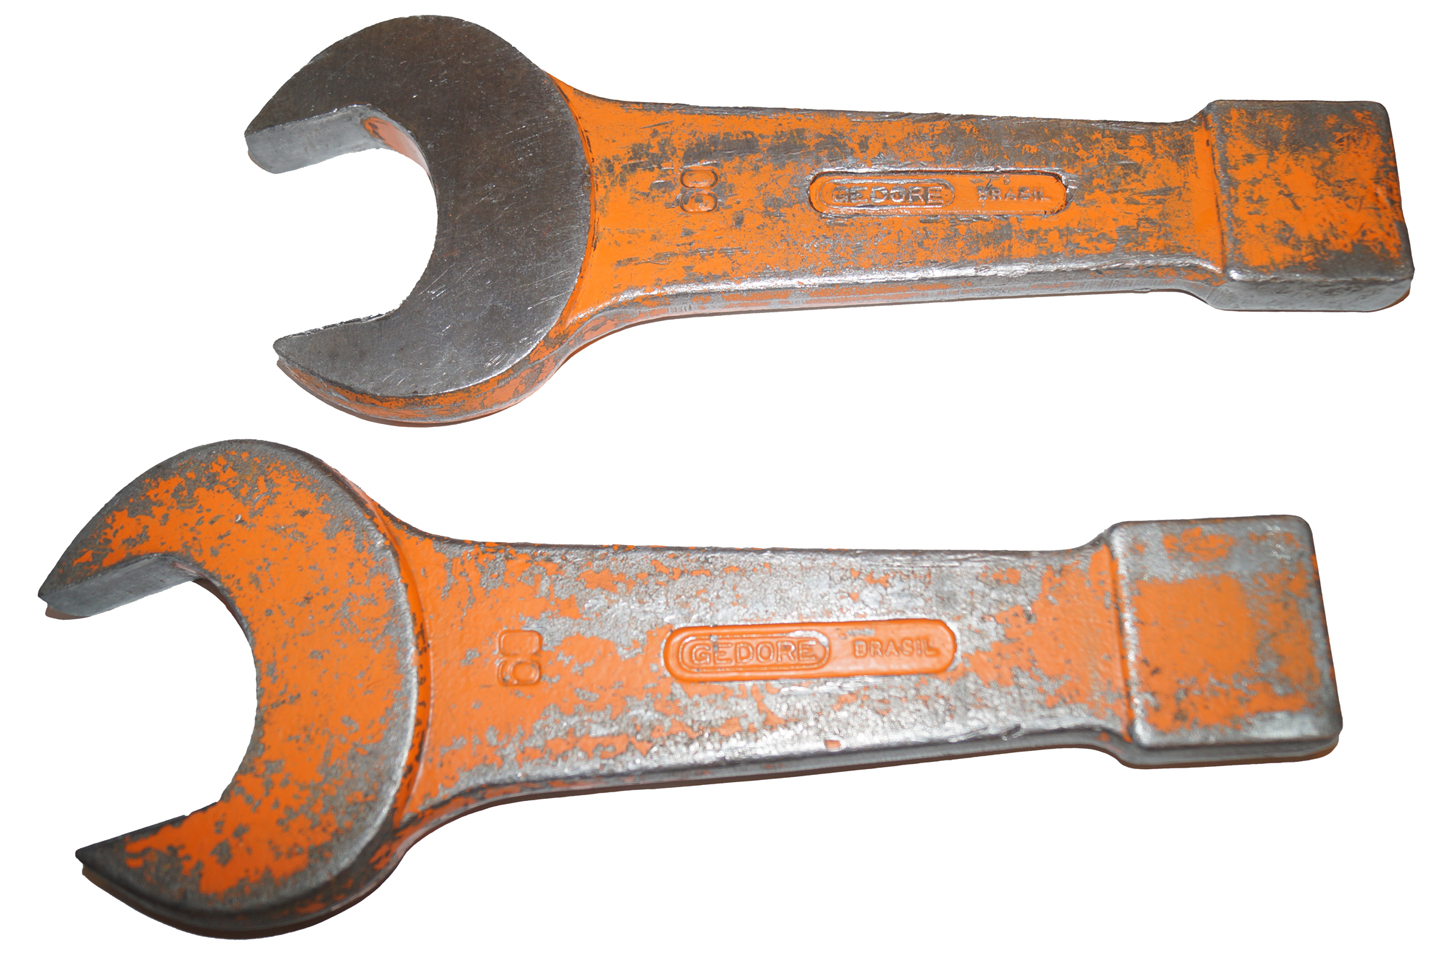 Gedore Open-Ended Striking Wrench 60mm